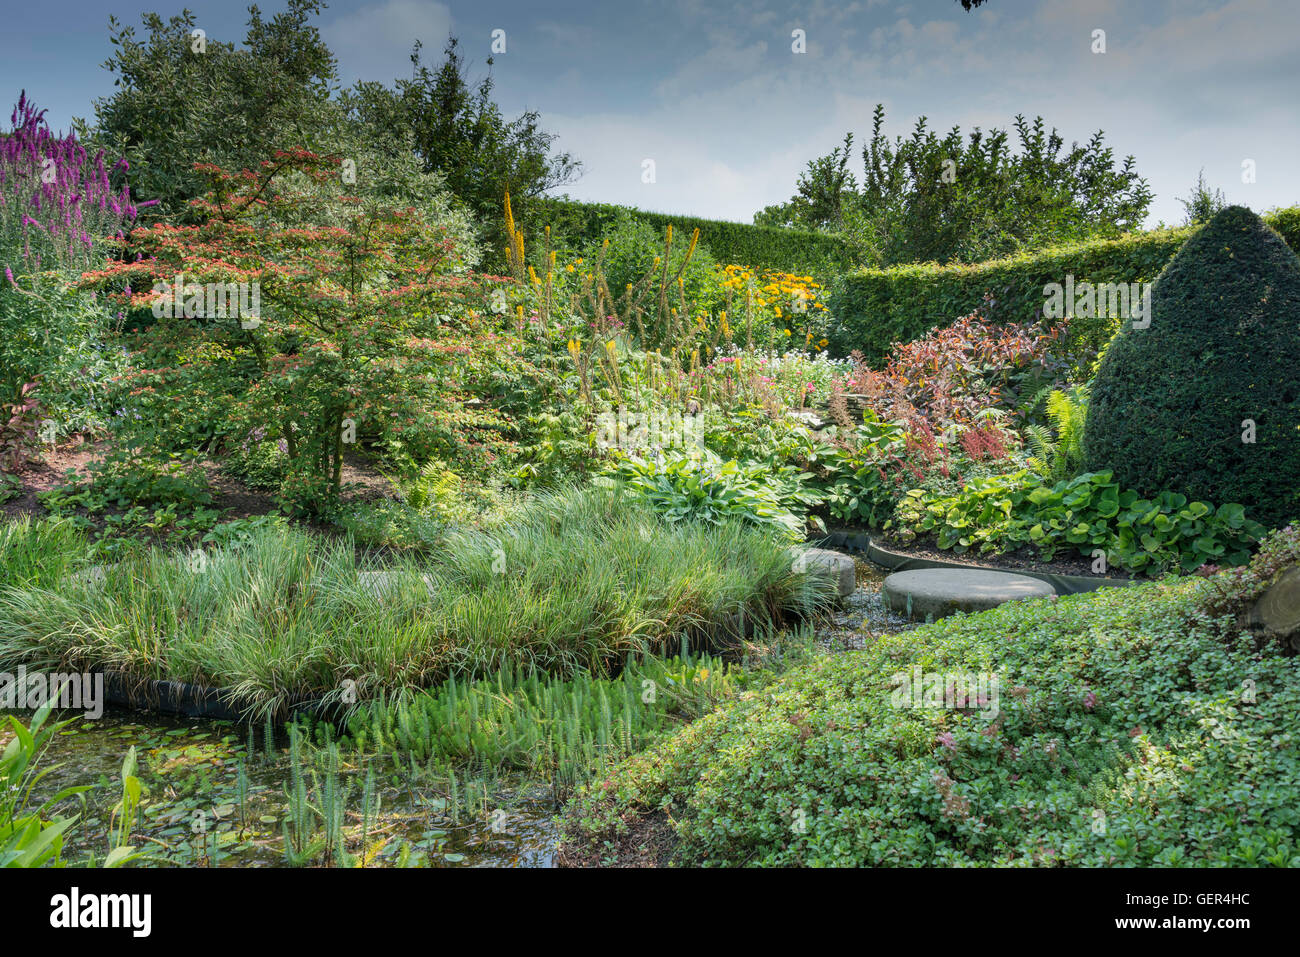 English Garden With Wild Flowers And Big Stones At Small Pond   Stock Image